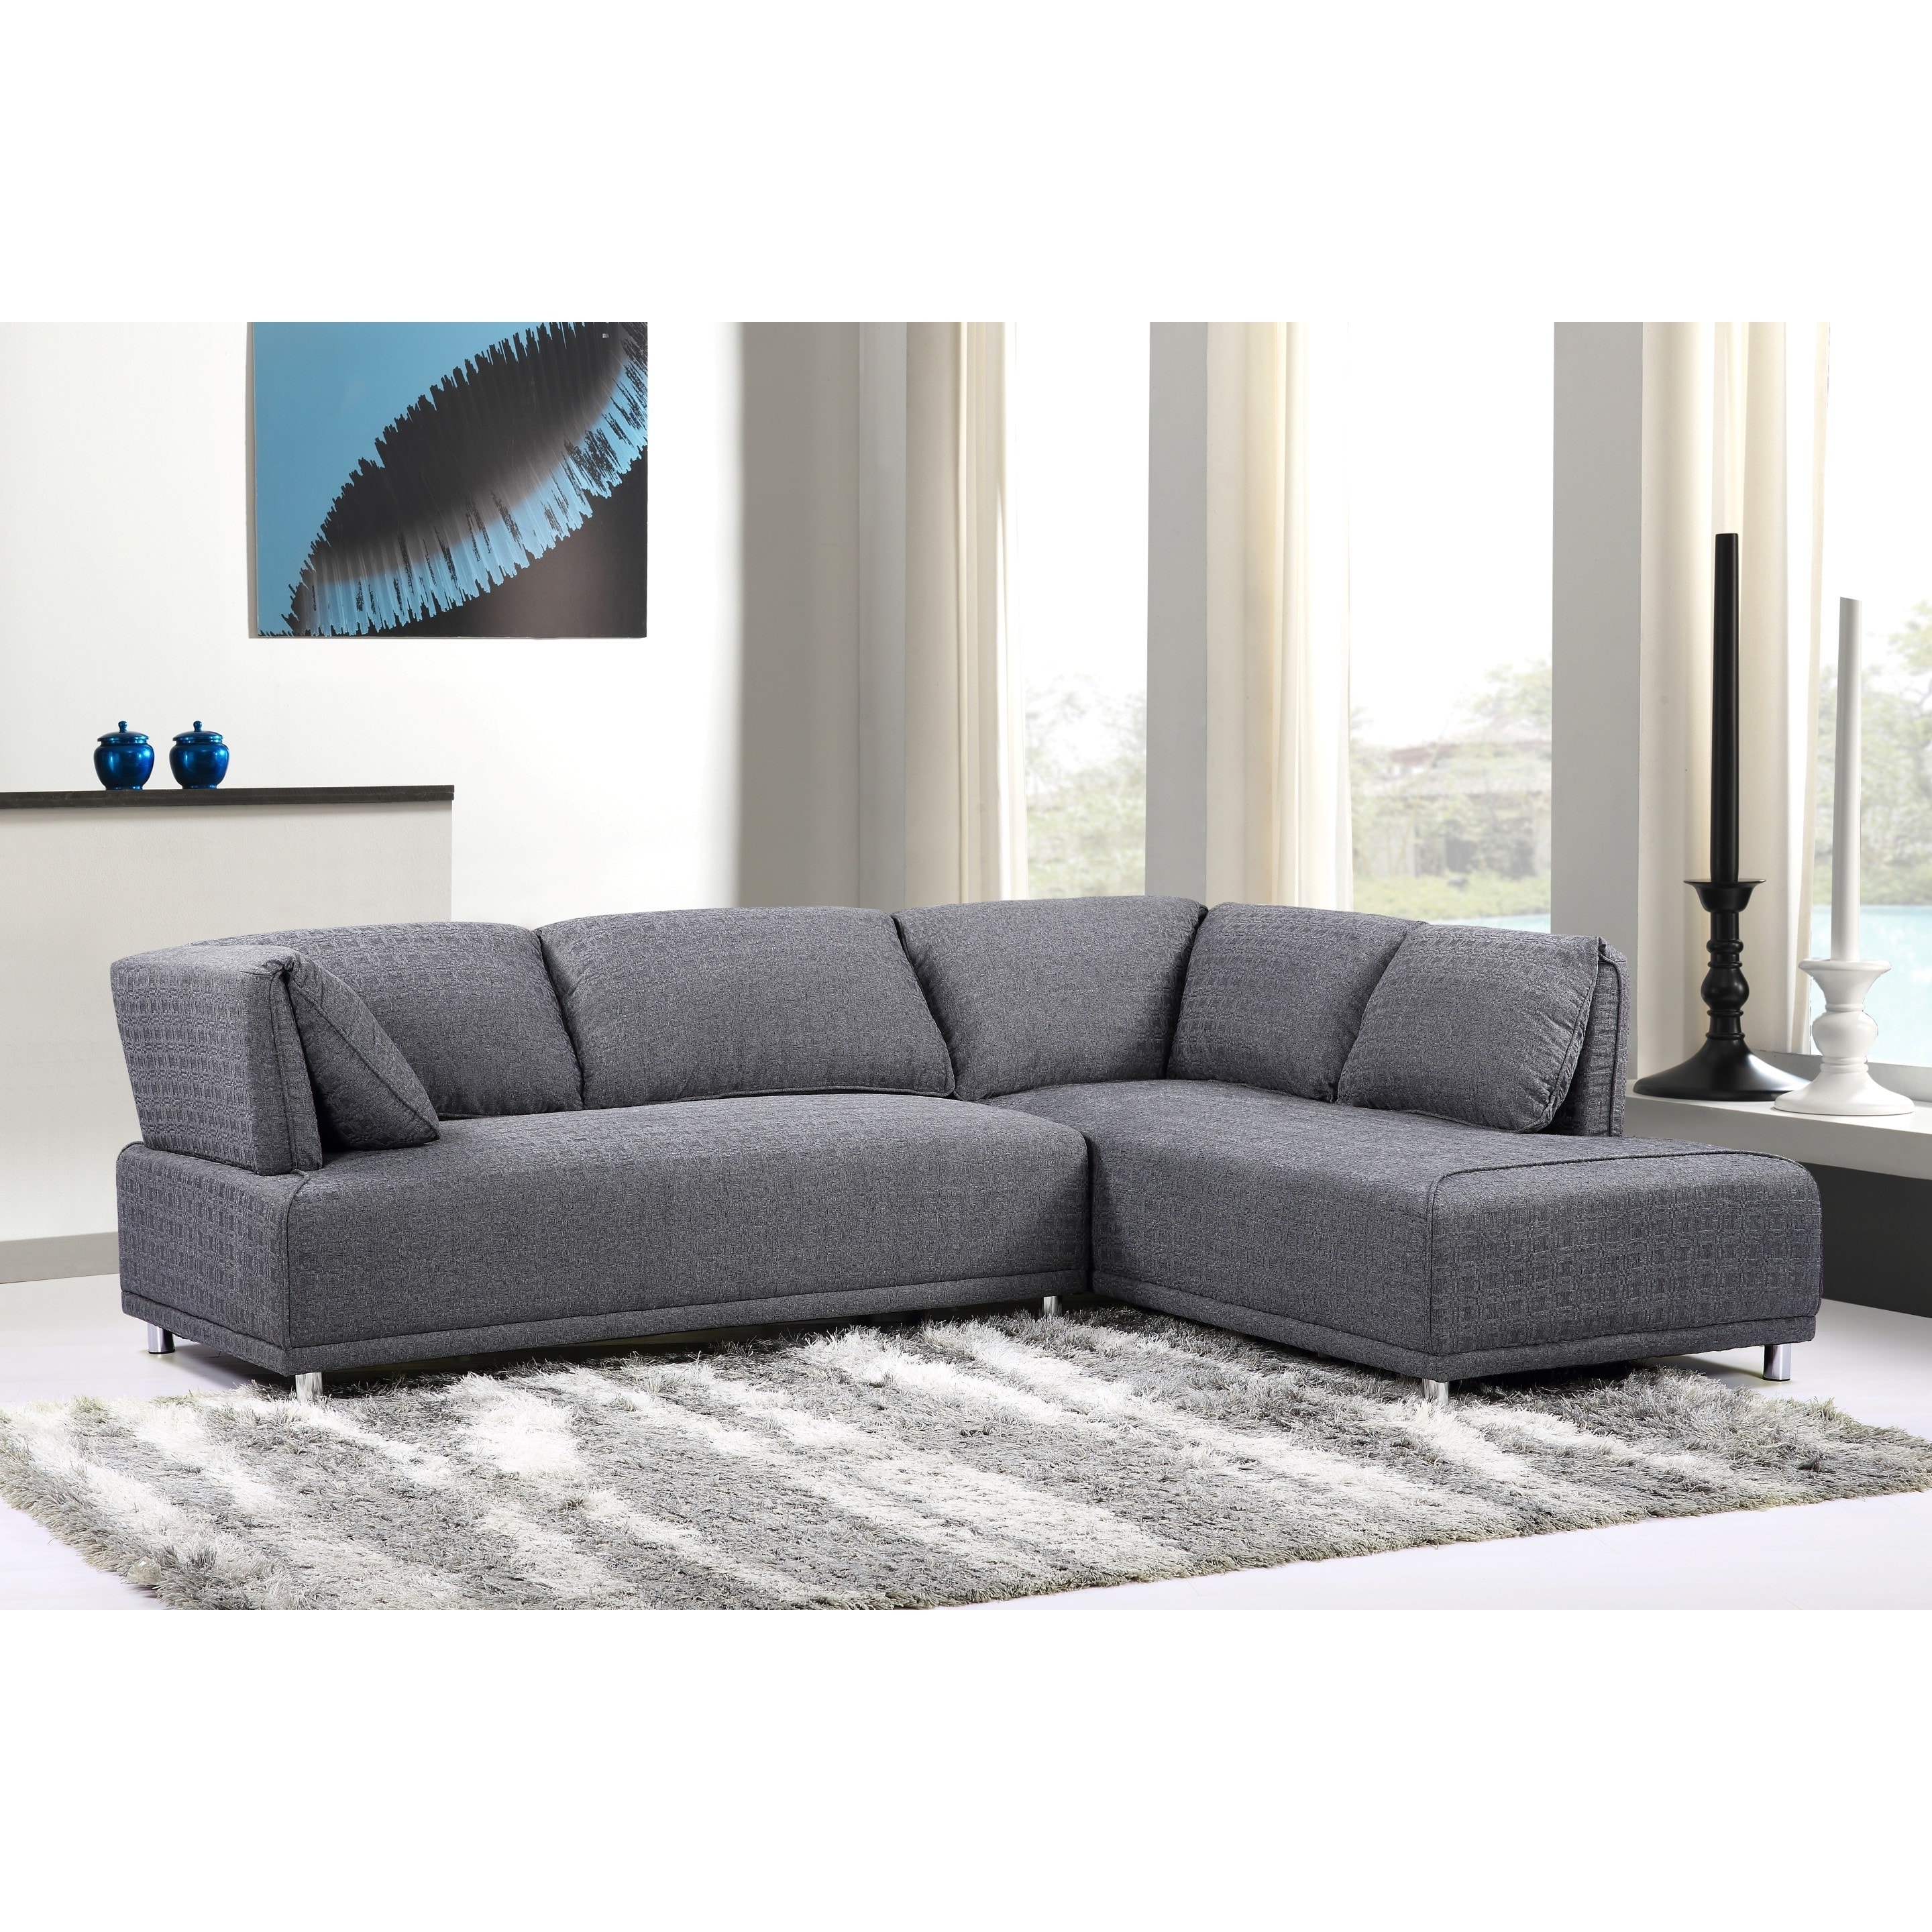 Modern Chaise Sofas Within Latest Modern Elvis Left Side Chaise Sectional Sofa With Metal Legs (View 9 of 15)